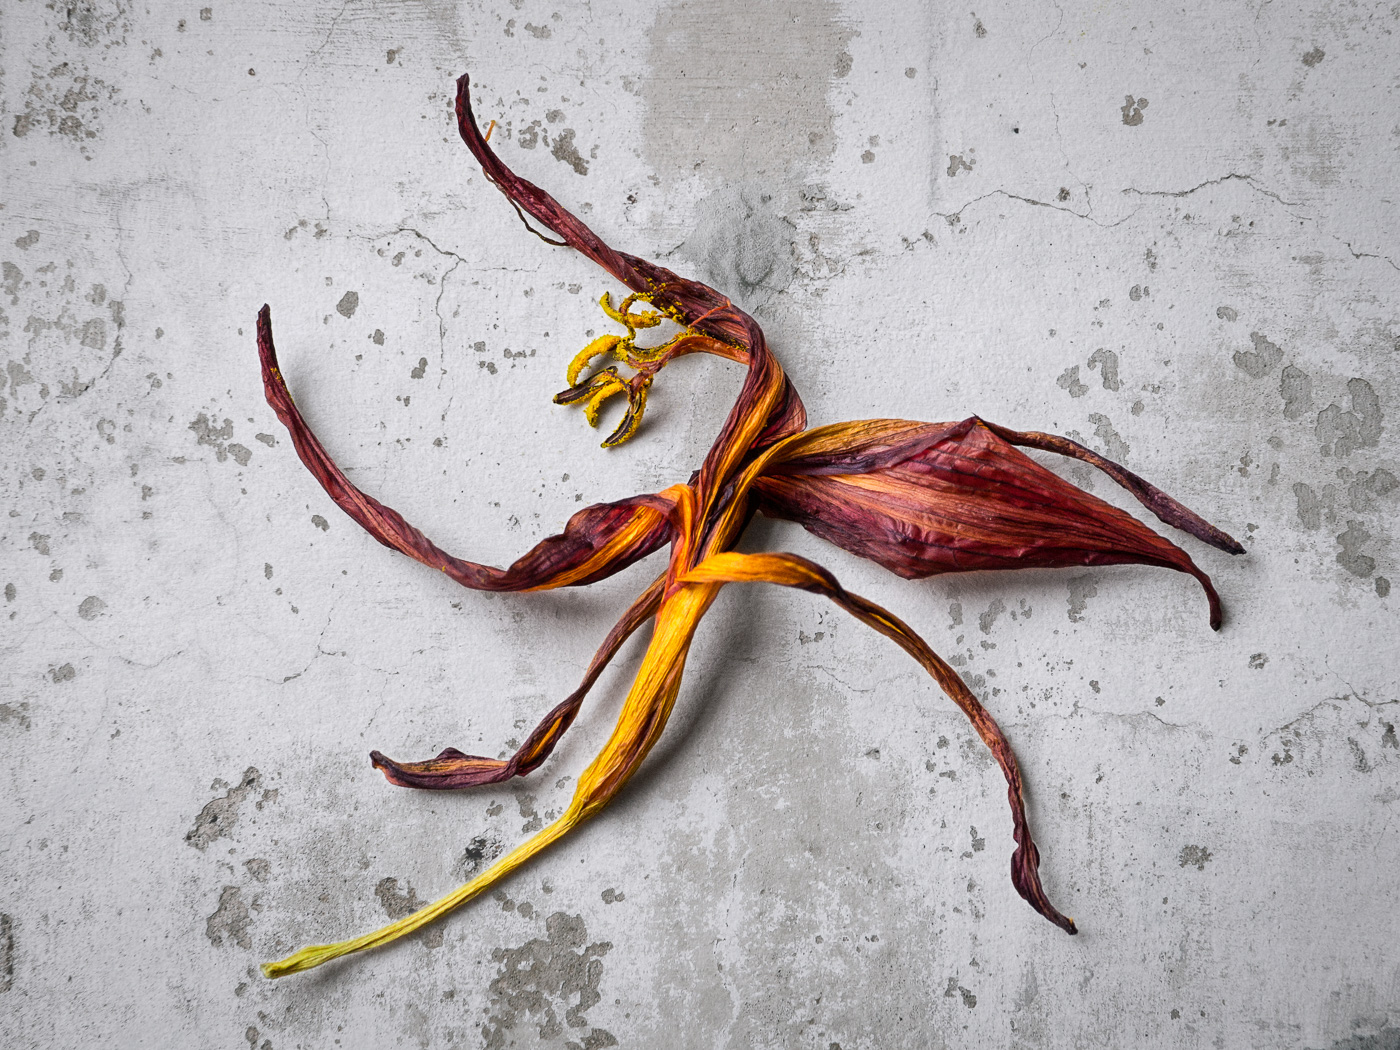 FL-Remains of the Daylily